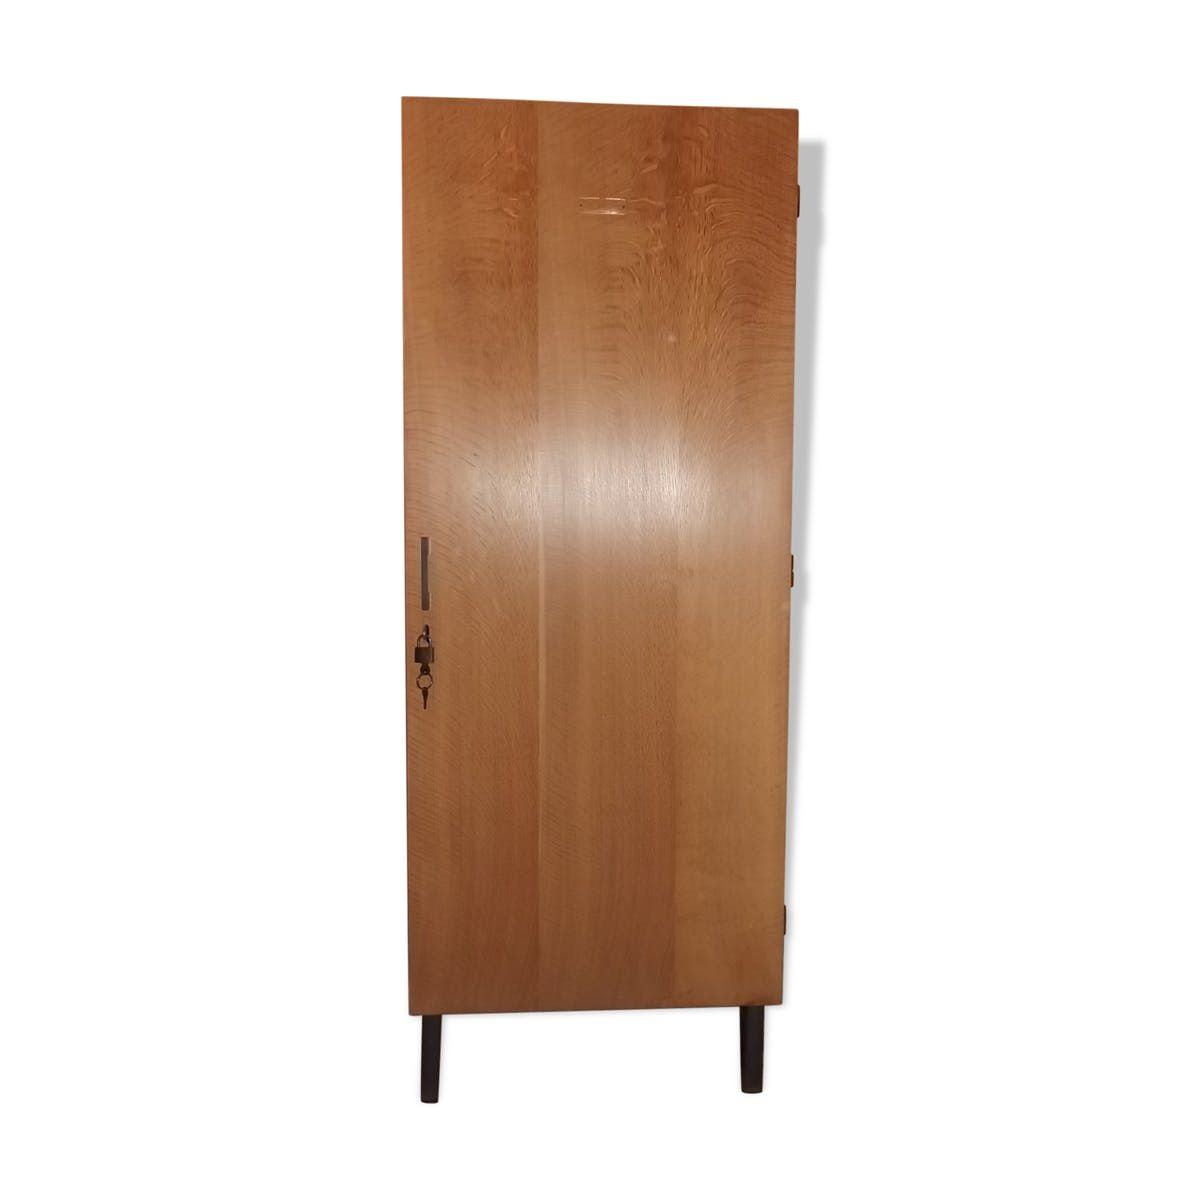 abschlie barer mid century schrank aus teak eiche furnier bei pamono kaufen. Black Bedroom Furniture Sets. Home Design Ideas